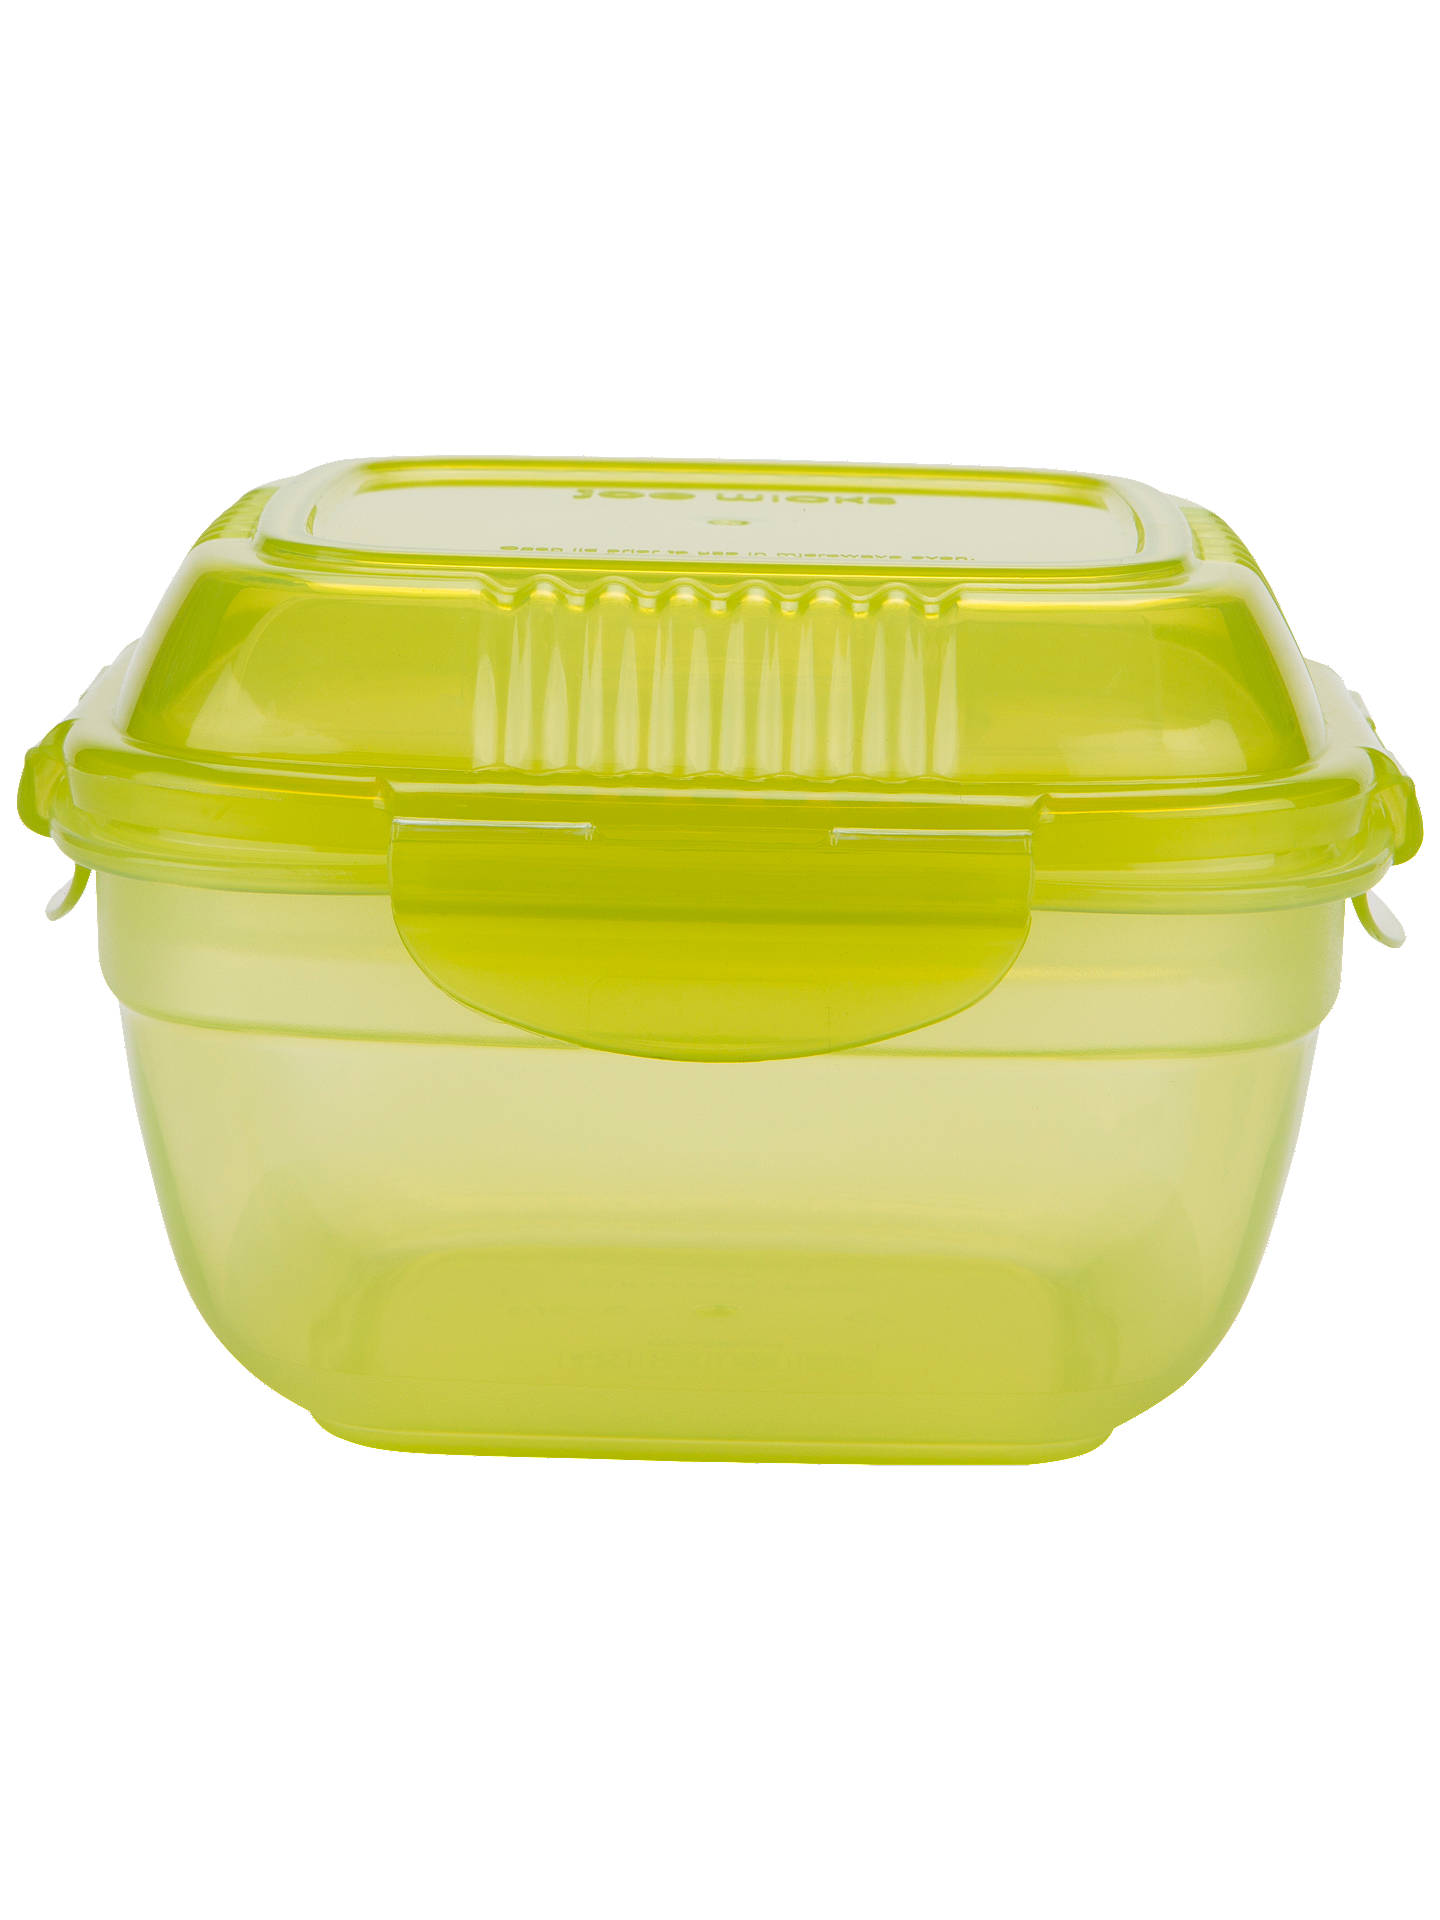 BuyJoe Wicks Airtight Salad Lunch Box, Green/Clear, 950ml Online at johnlewis.com